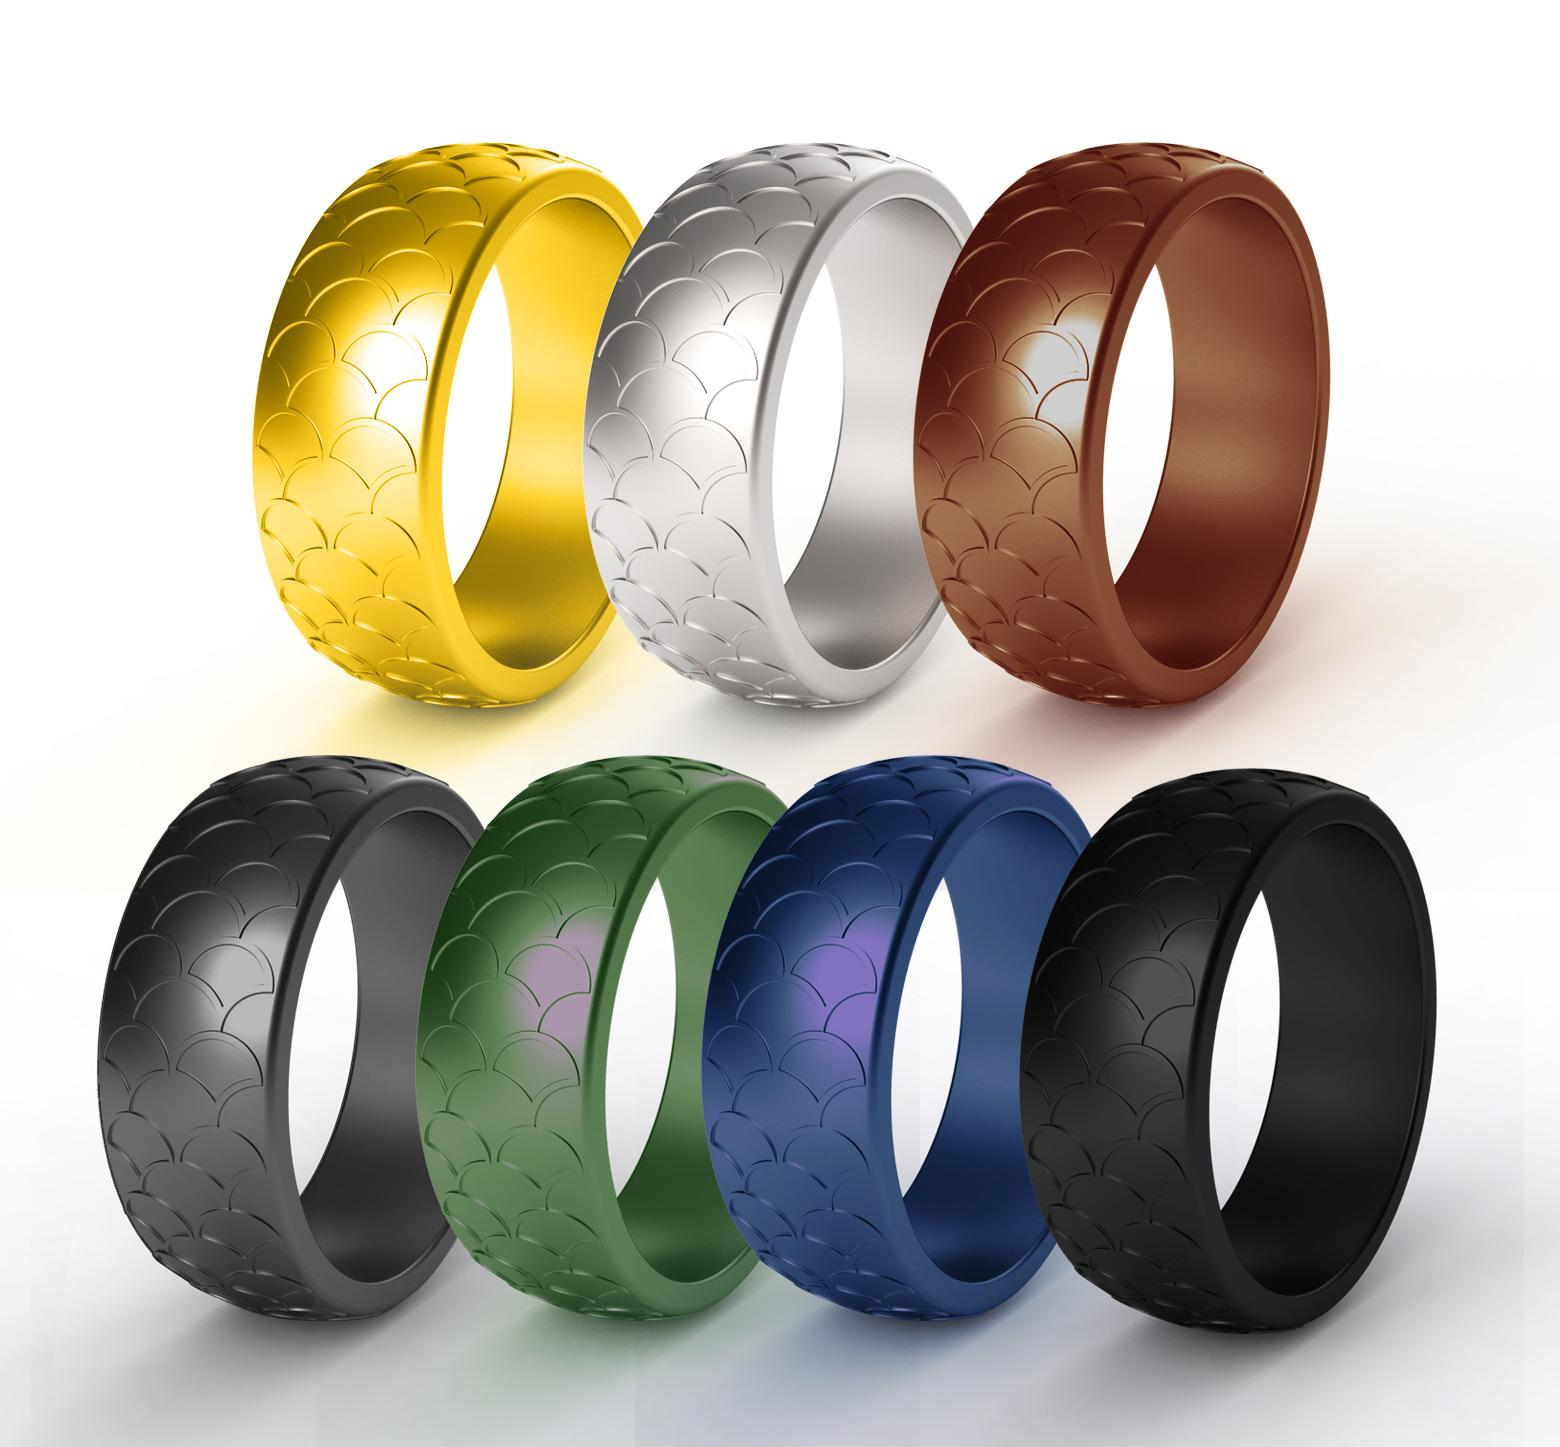 Silicone Wedding Ring for Men Metallic,Black and Camo Colors,Breathable Mens Rubber Wedding Bands